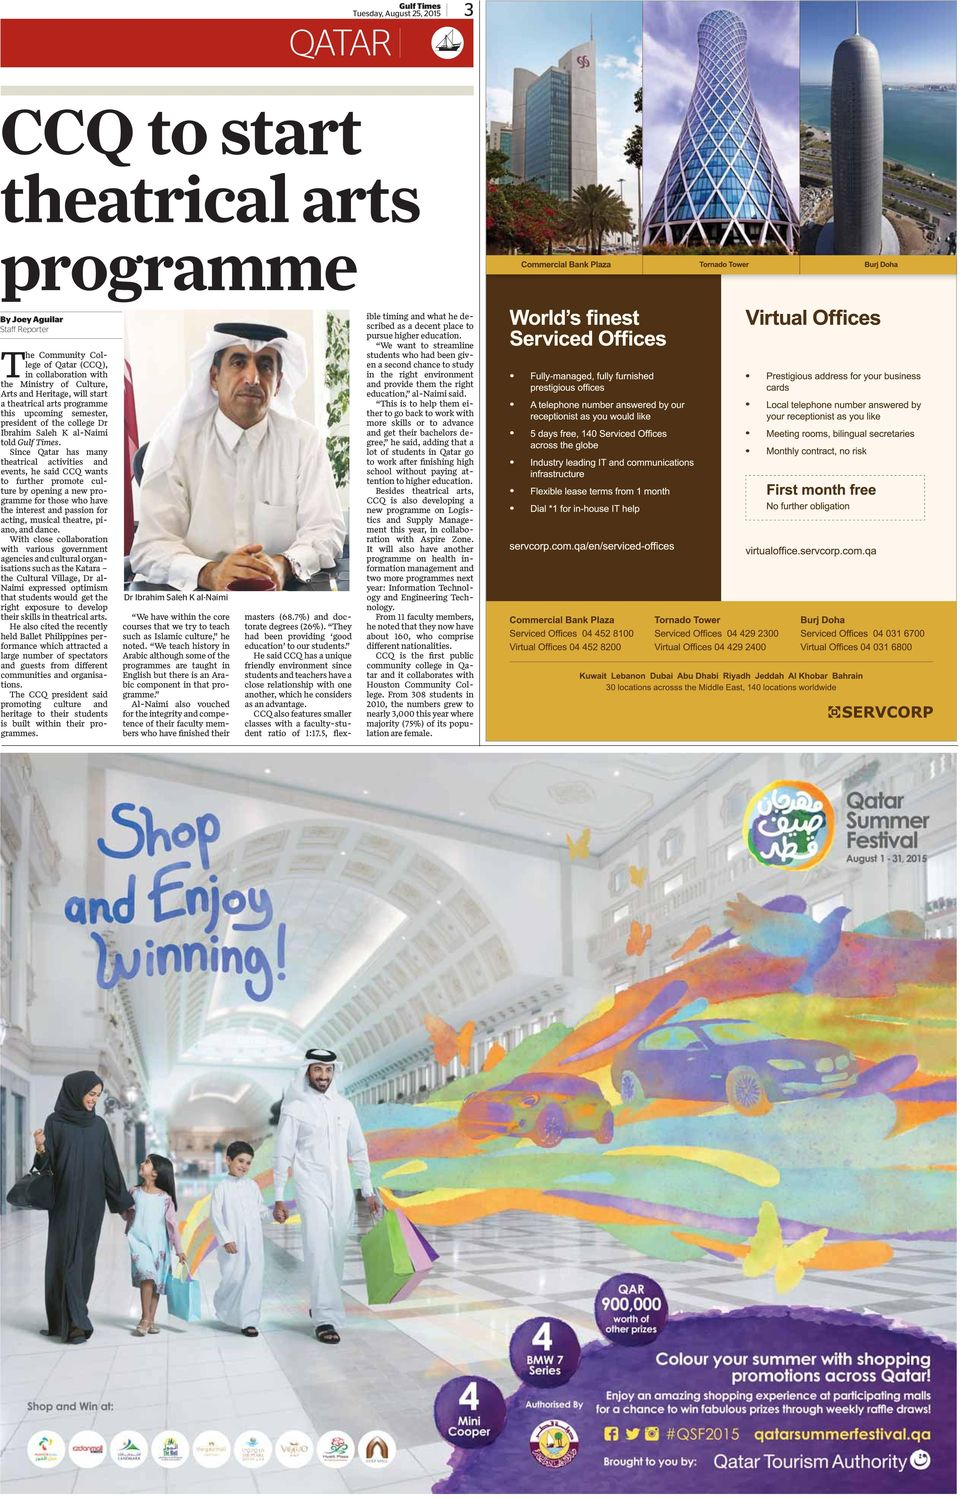 Since Qatar has many theatrical activities and events, he said CCQ wants to further promote culture by opening a new programme for those who have the interest and passion for acting, musical theatre,